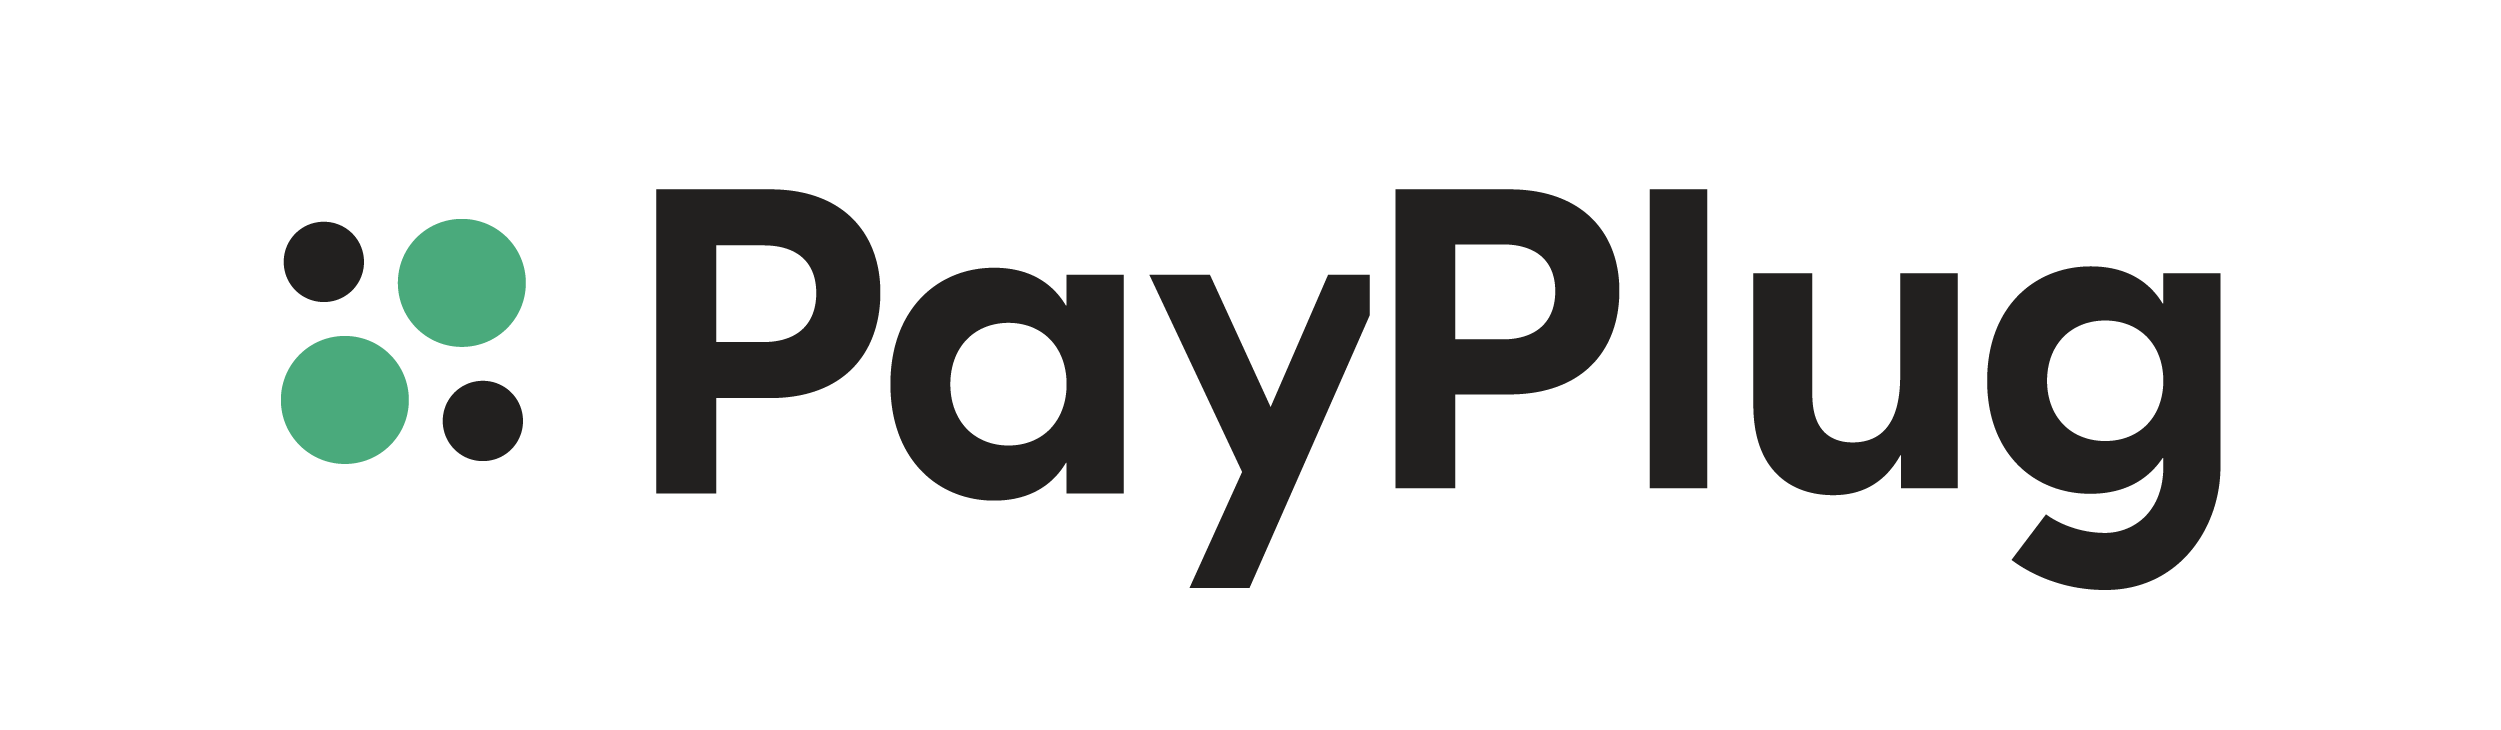 PayPlug Formations Home Page